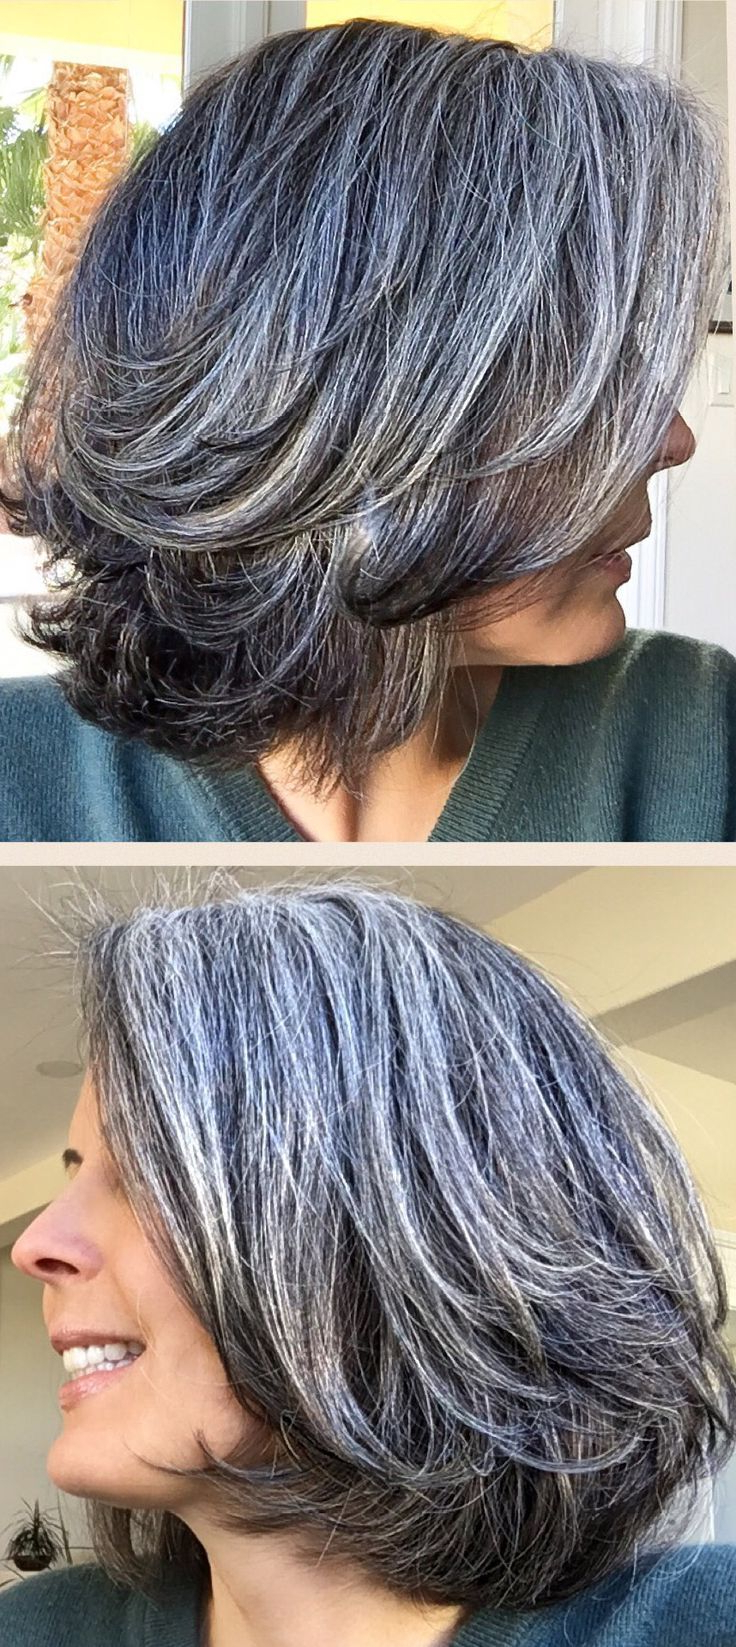 Resultado De Imagen De Salt And Pepper Hair Women | Hair In 2018 With Layered Tousled Salt And Pepper Bob Hairstyles (Gallery 7 of 20)